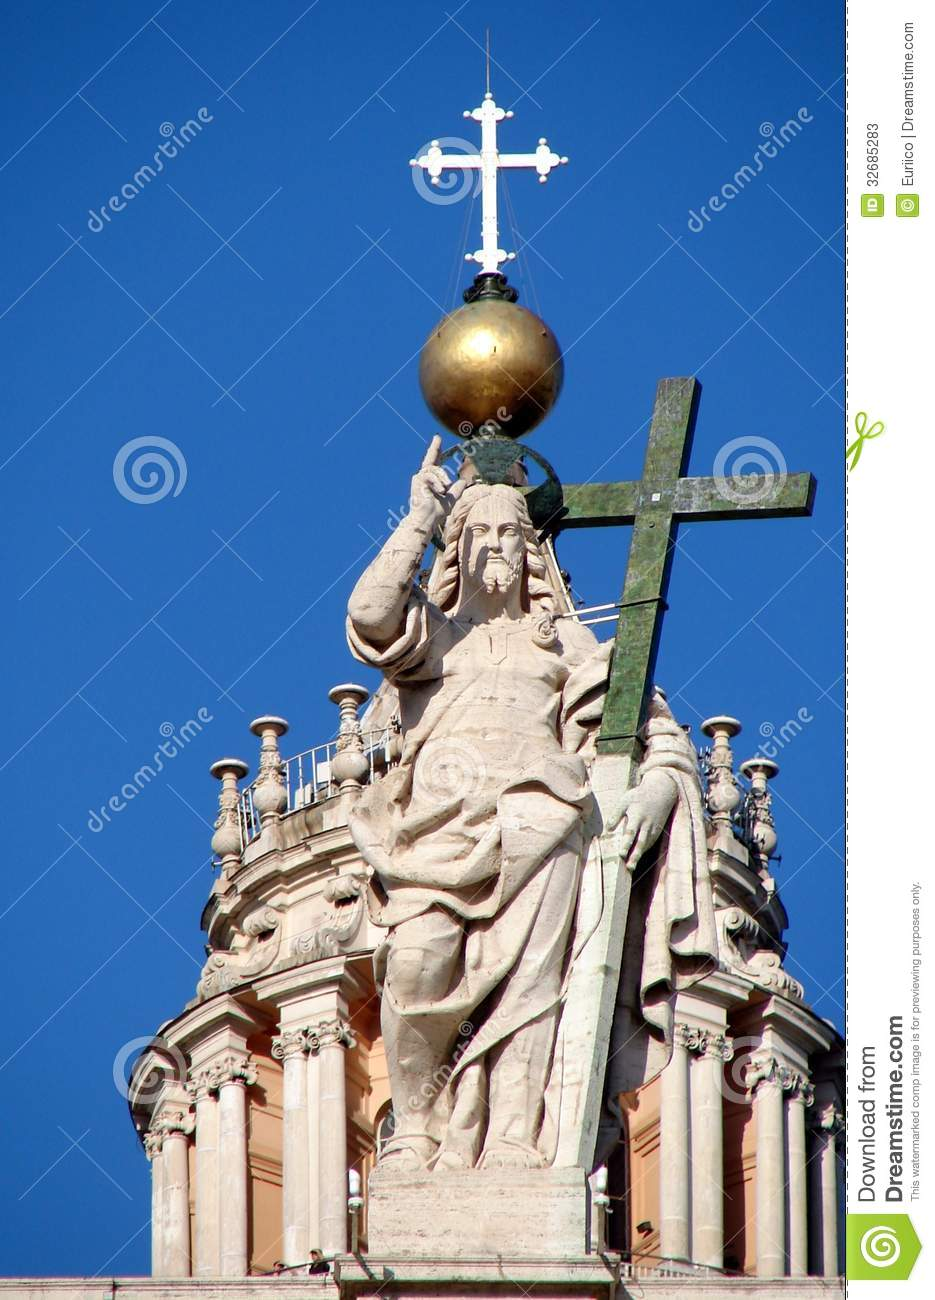 Christ the Redeemer on the balustrade of St Peters Basilica